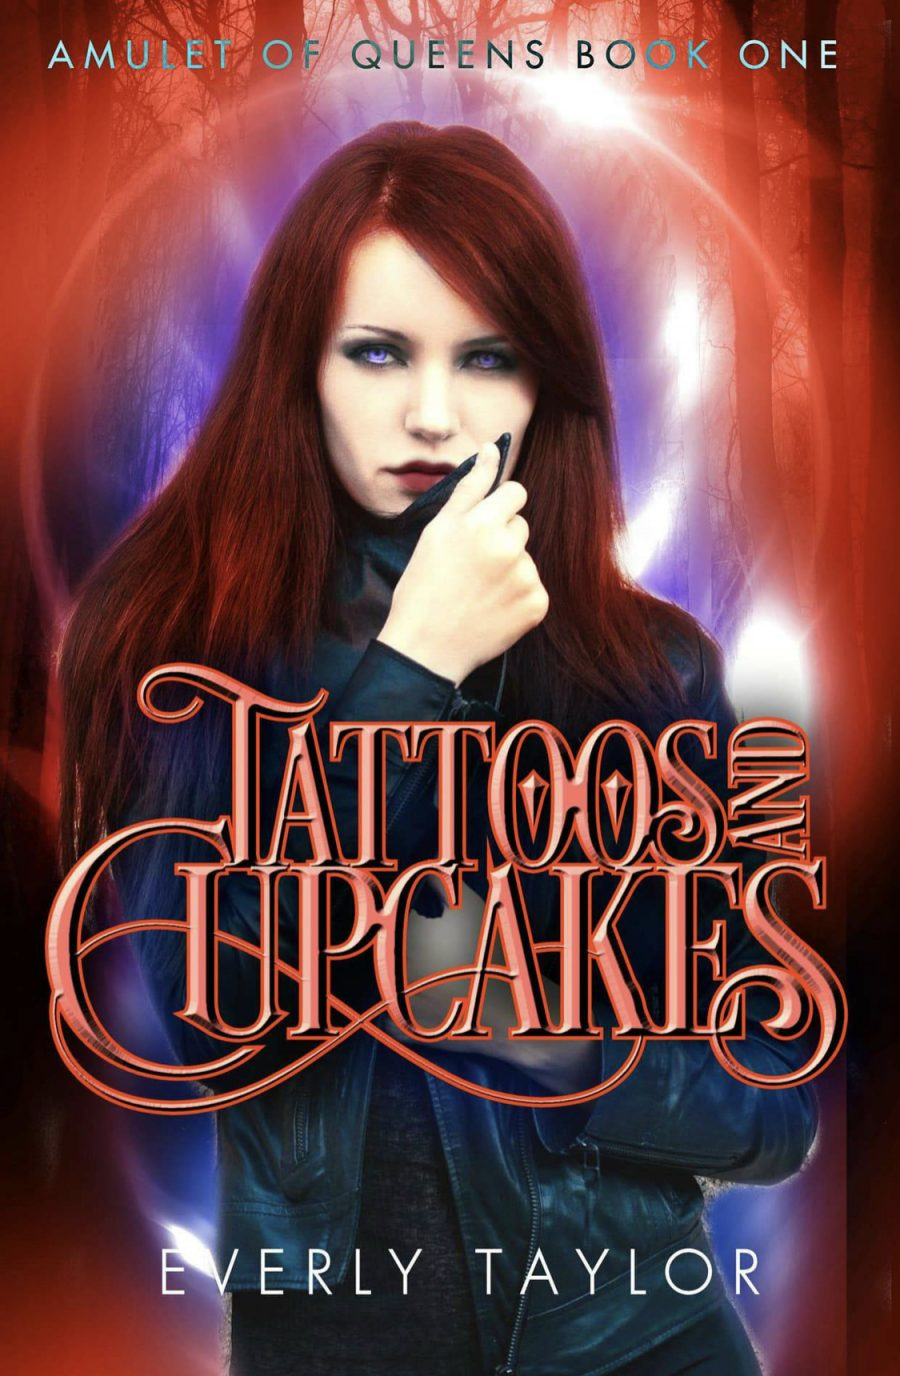 Tattoos and Cupcakes by Everly Taylor - A Book Review #FastBurn #WhyChoose #RH #ReverseHarem #Vampires #Book1 #PNR #Paranormal #NewRelease